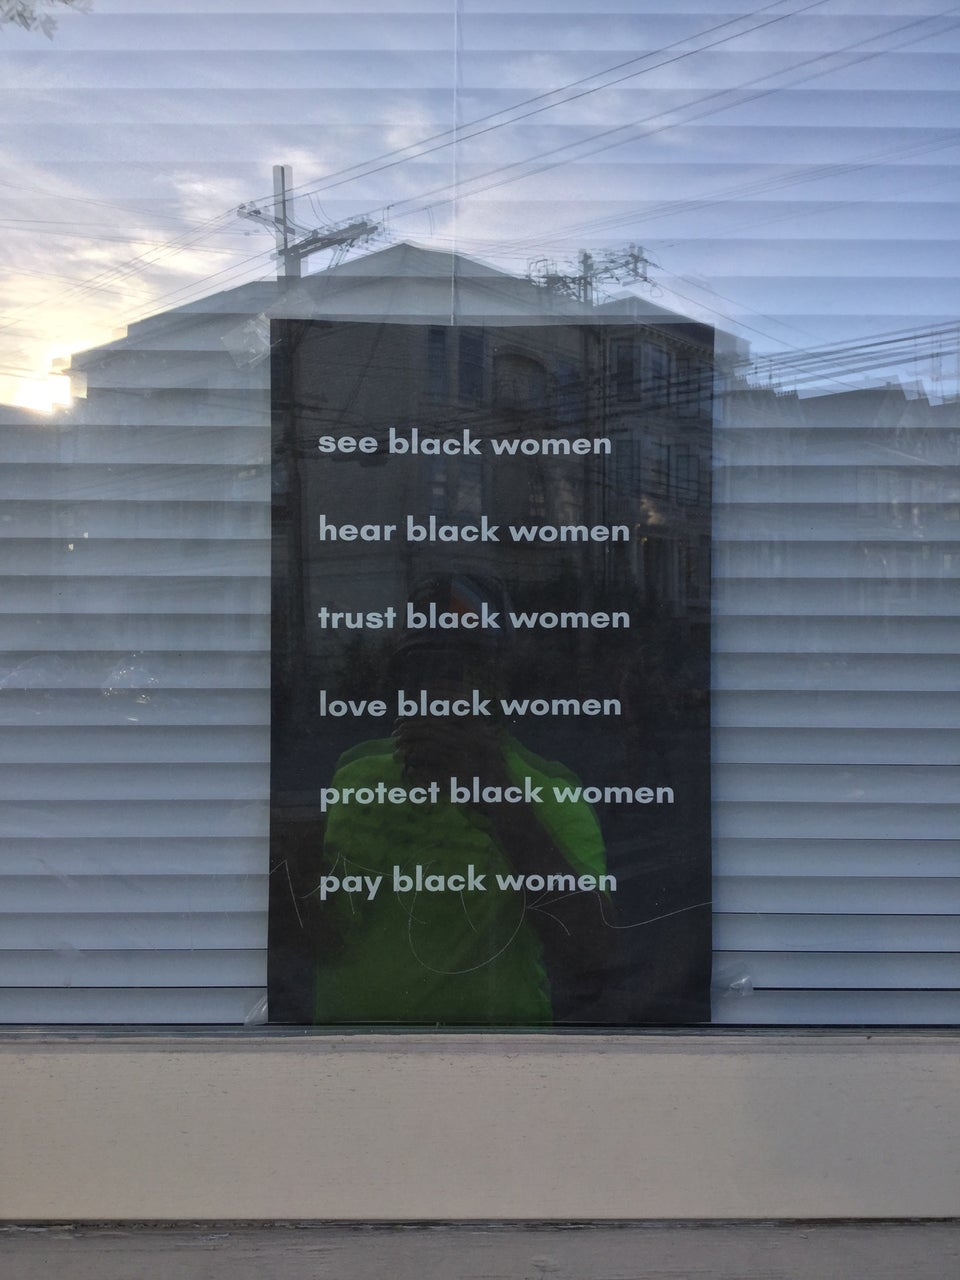 Black sign with white text in a window with white mini-blinds behind it, with six lines: see black women, hear black women, trust black women, love black women, protect black women, pay black women.